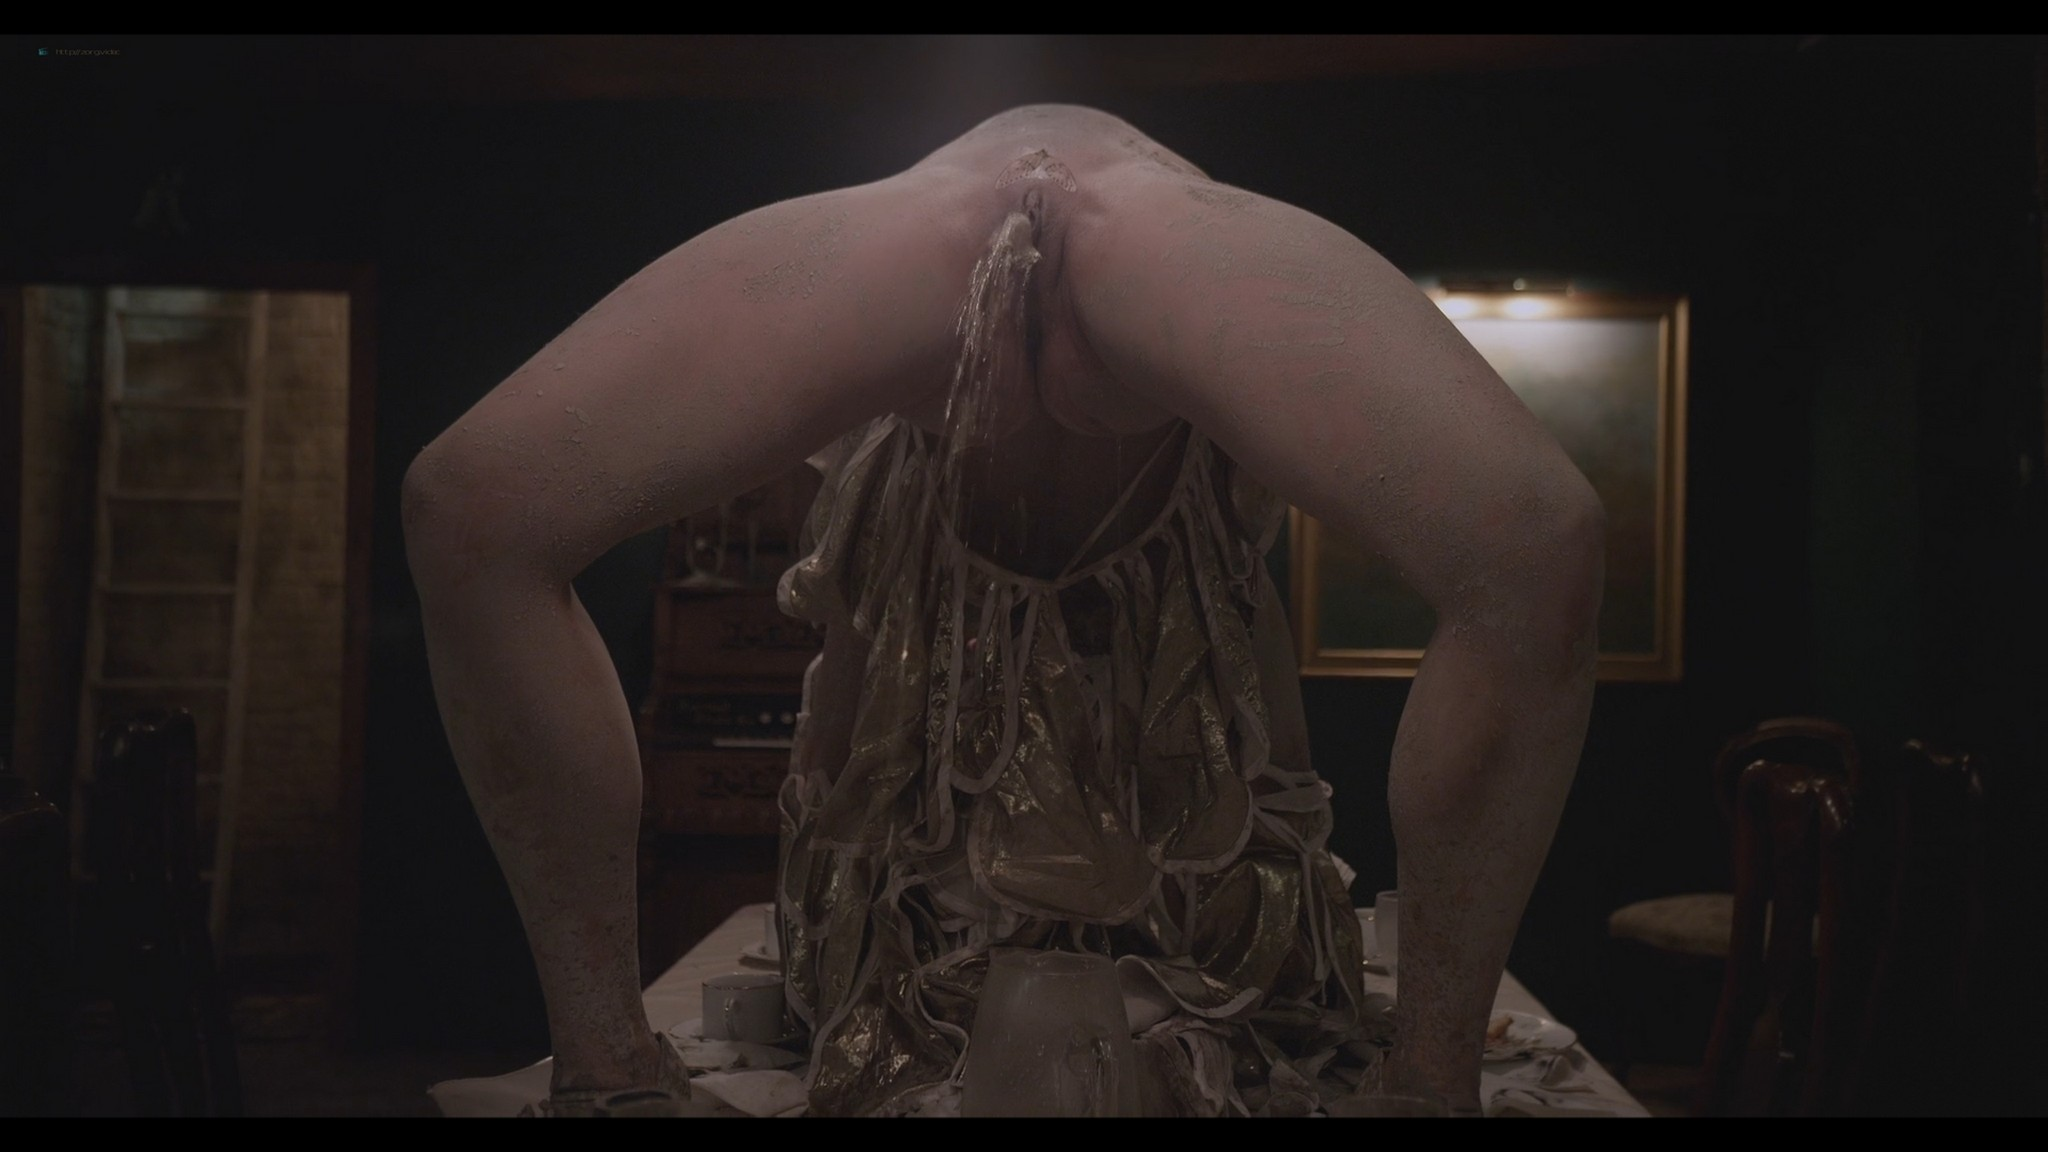 Maggie Gyllenhaal nude lactating Aimee Mullins, Adrianna Nicole, and others nude end explicit - River of Fundament (2014) HD 1080p (5)